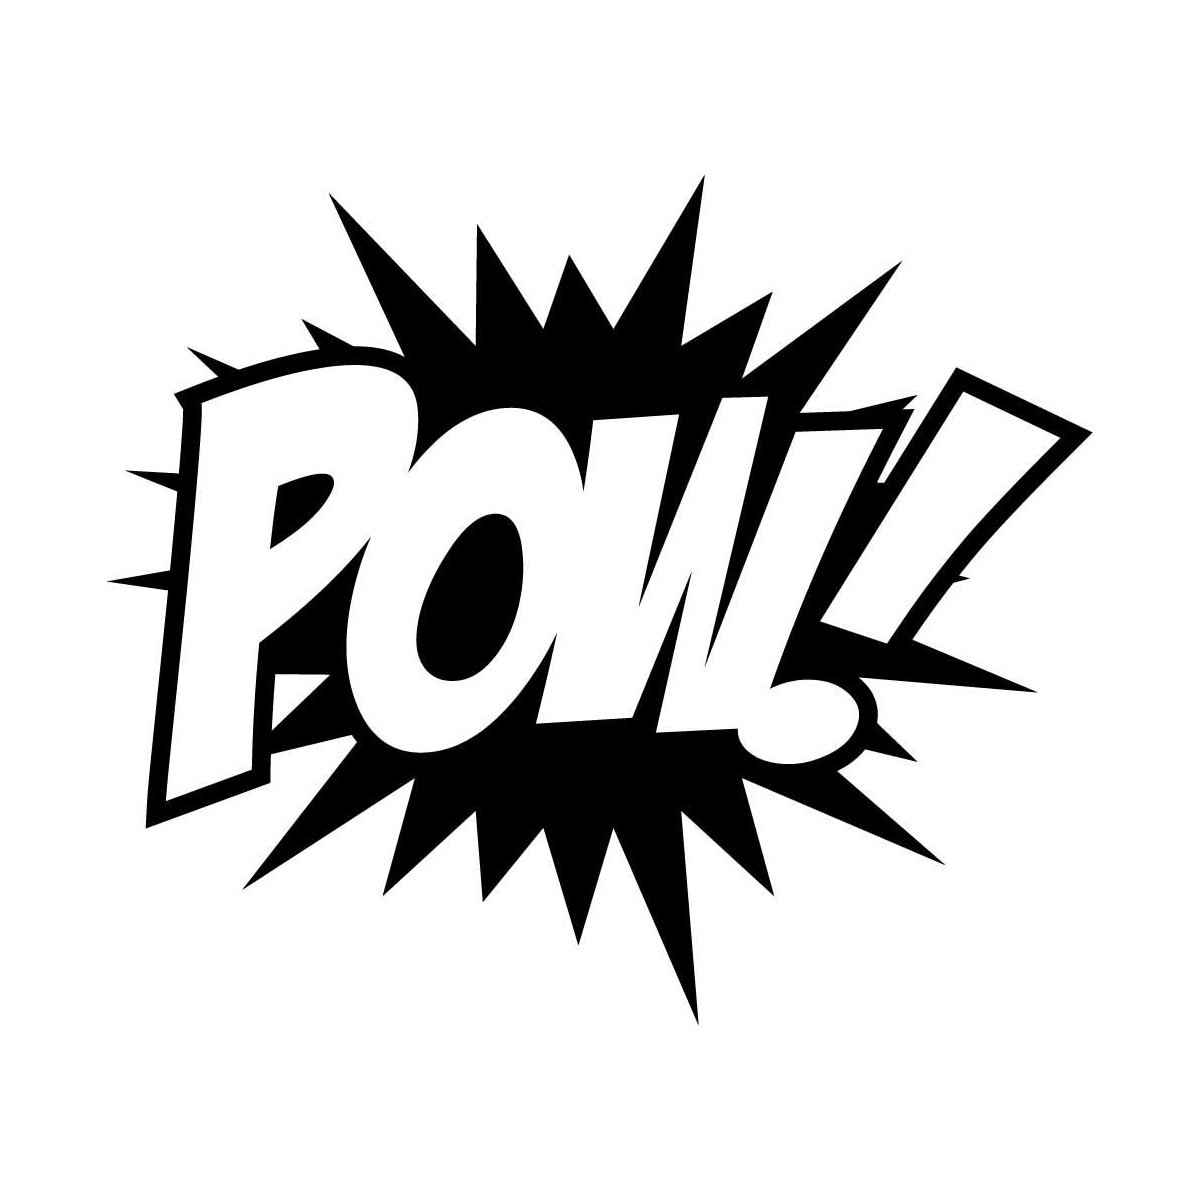 Free Pow Download Free Clip Art Free Clip Art On Clipart Library